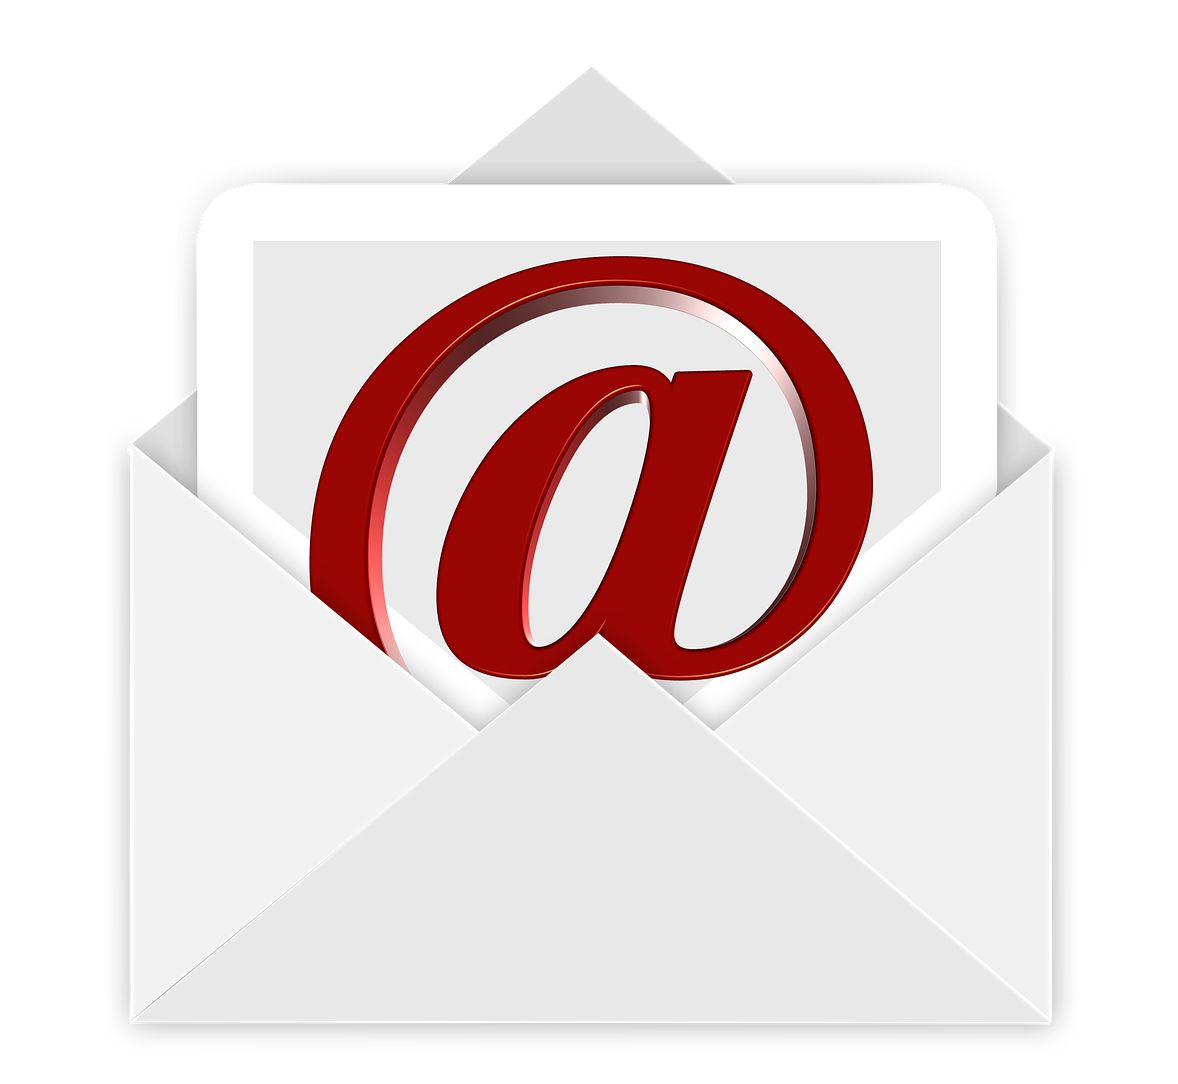 Umschlag, Briefumschlag, At, Mail, Email, E-Mail, Post